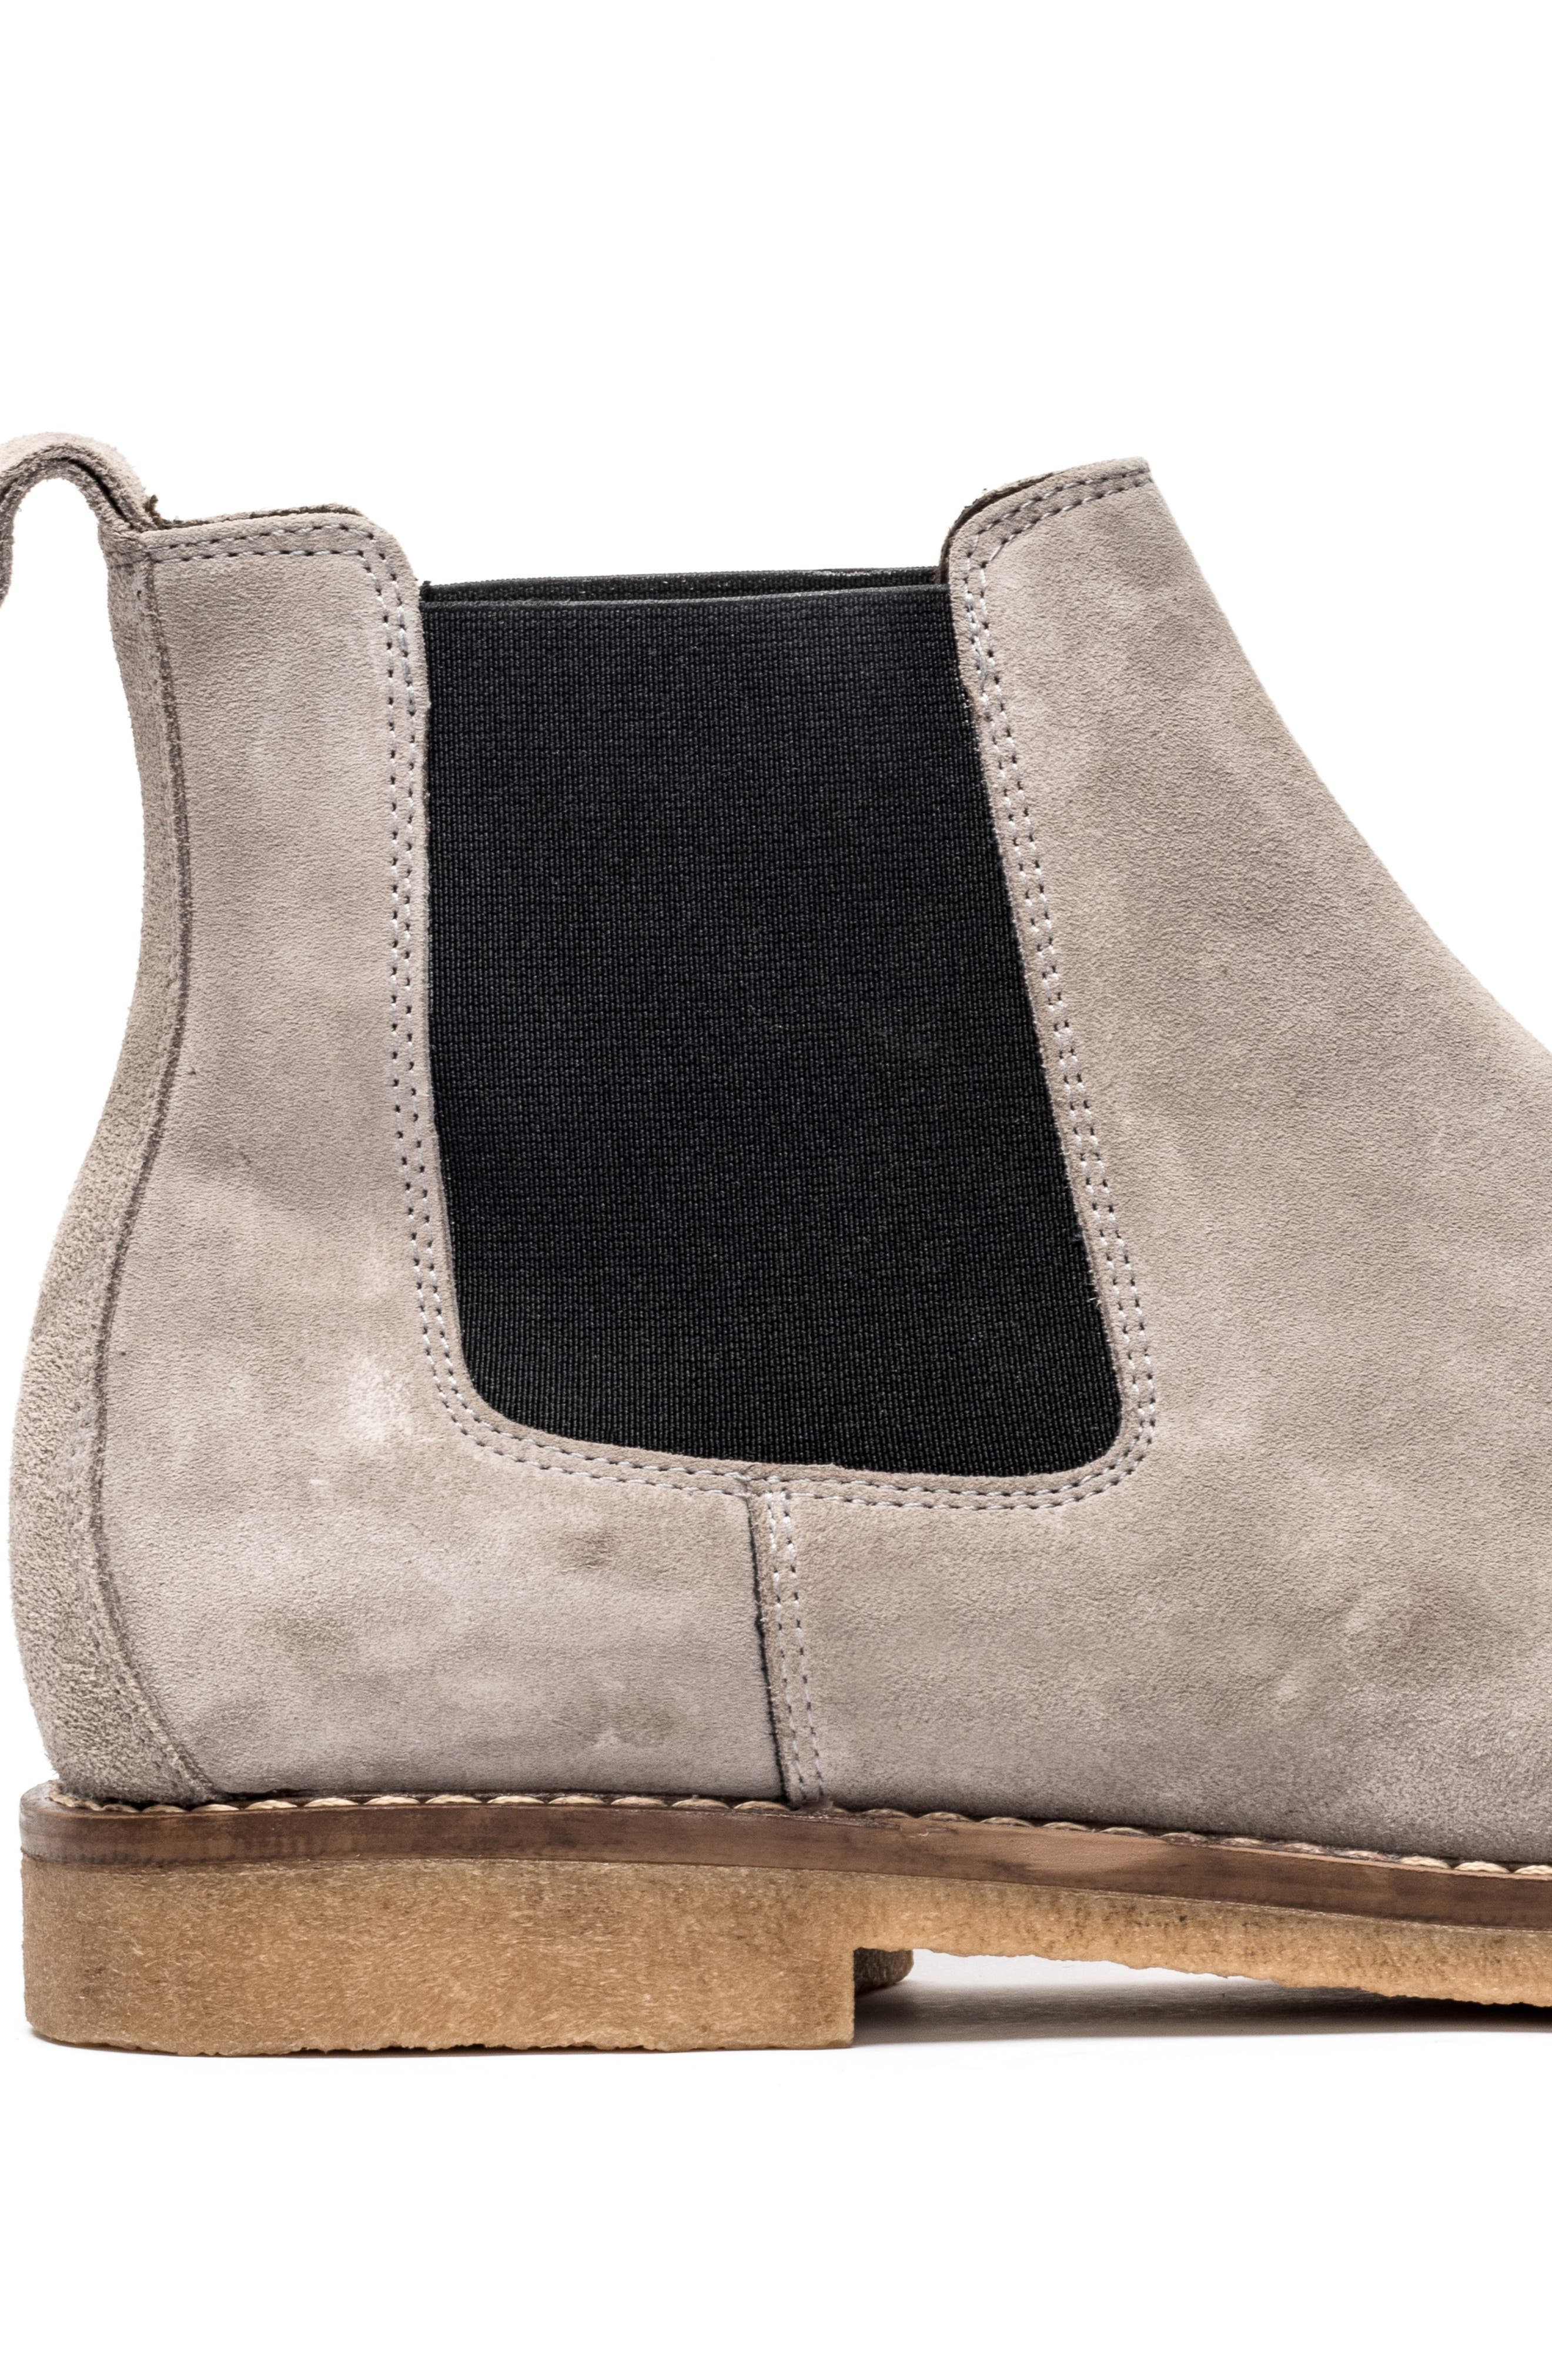 Gertrude Valley Water Repellent Chelsea Boot,                             Alternate thumbnail 6, color,                             STONE